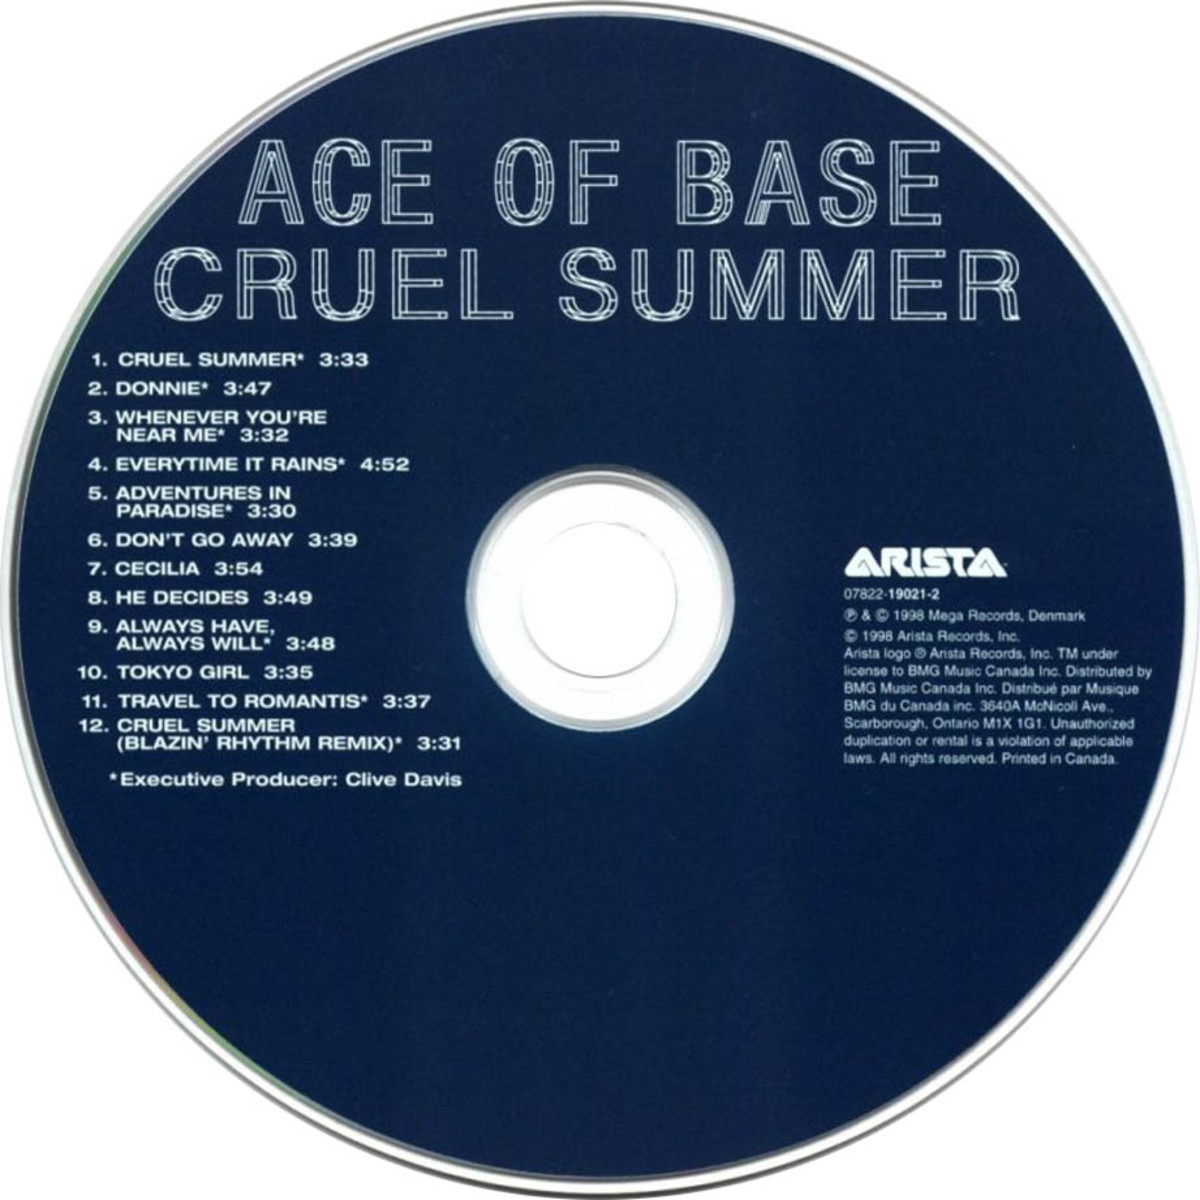 review-cruel-summer-by-swedish-pop-music-group-ace-of-base